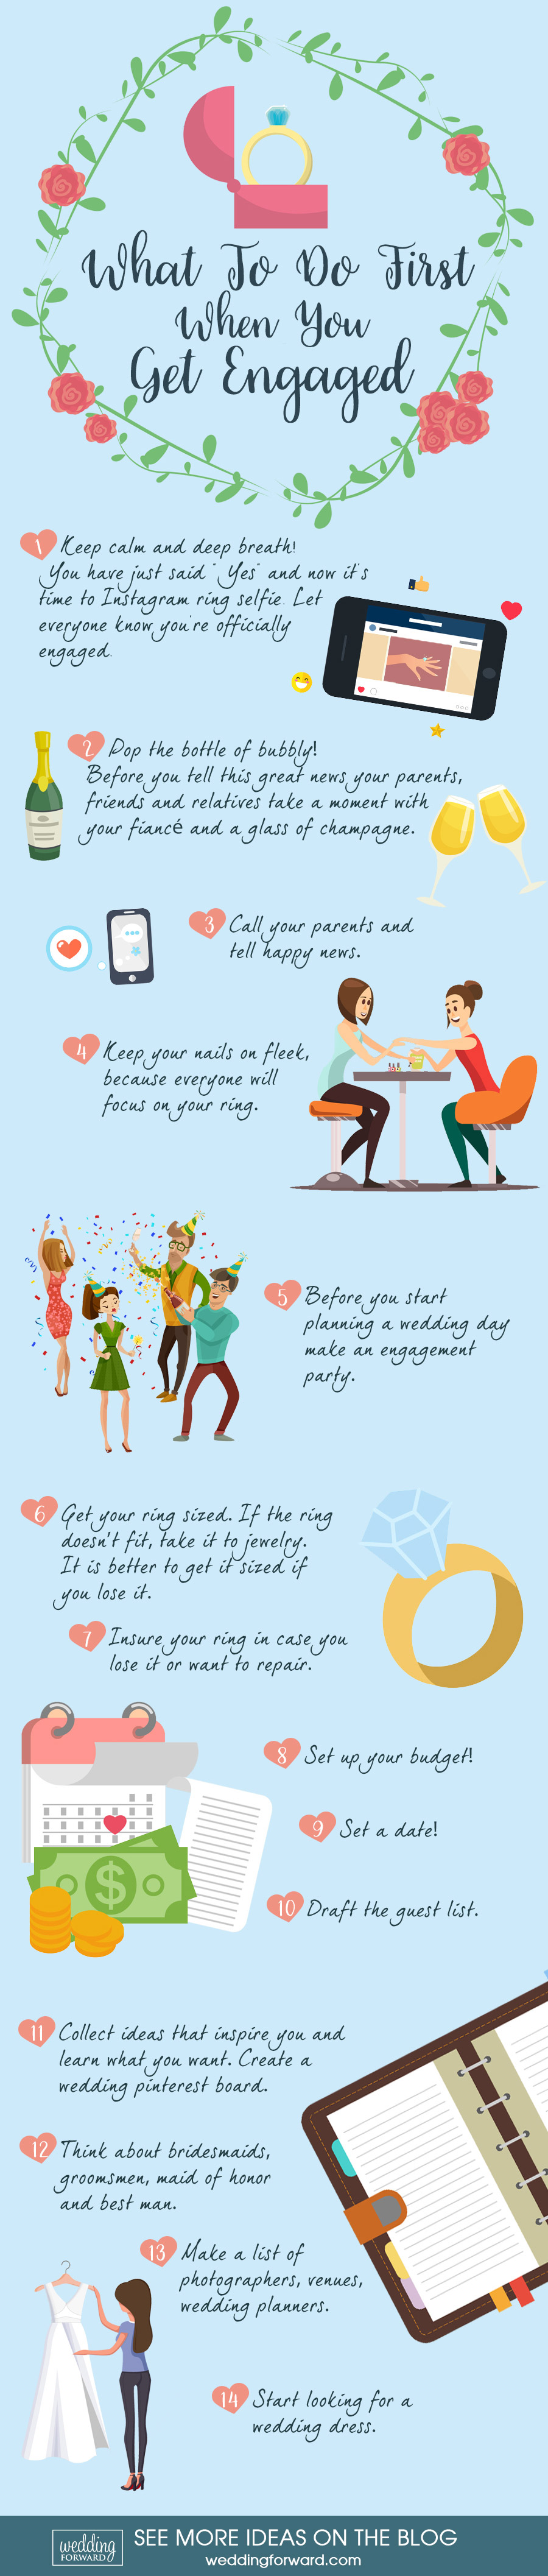 infographic what to do first when you get engaged